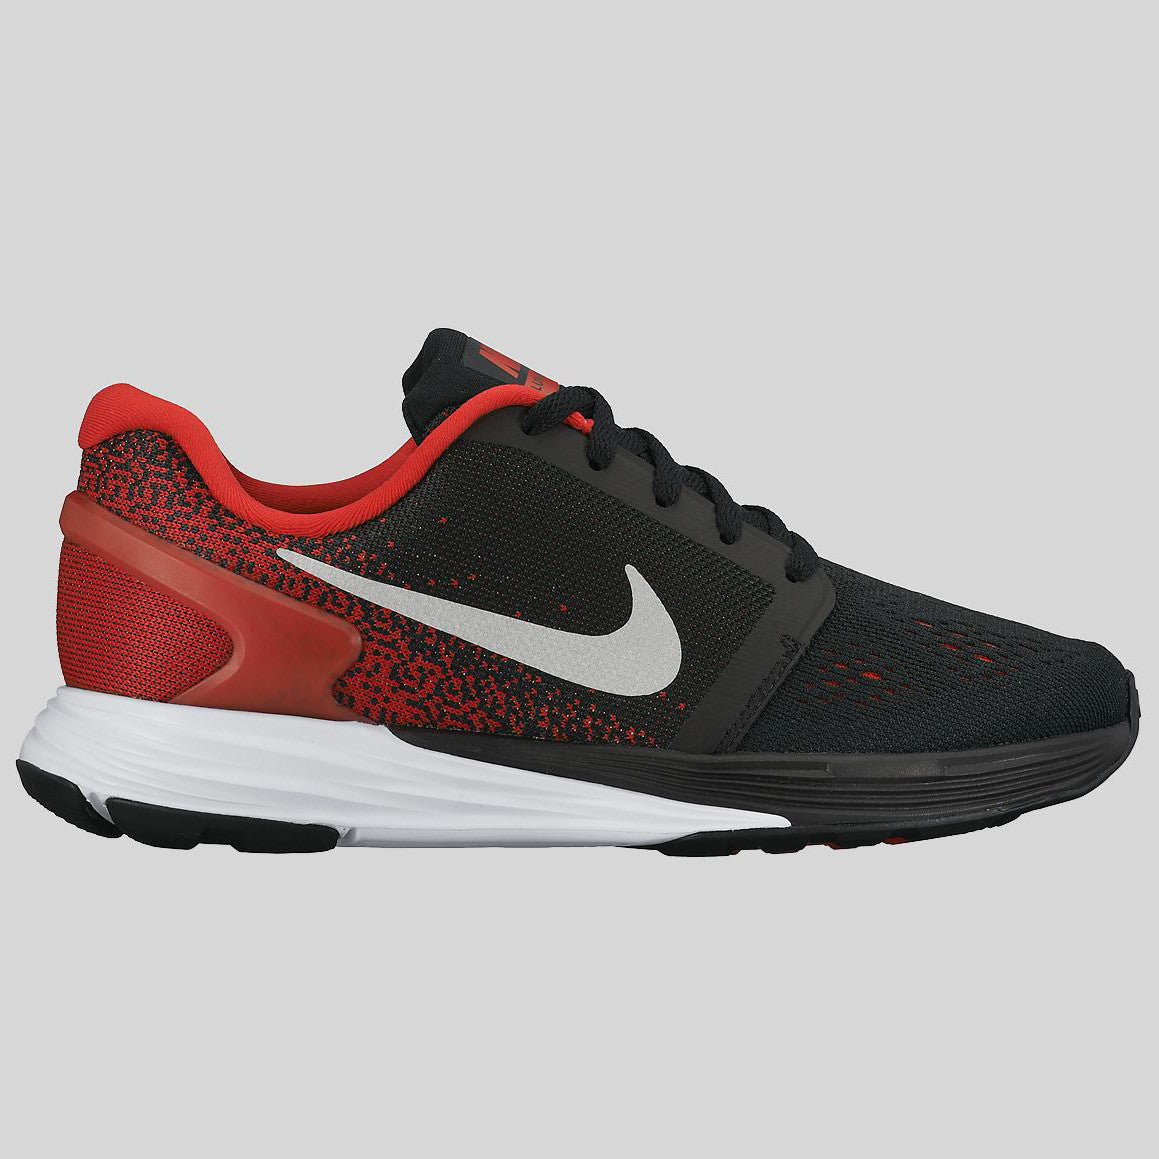 Nike Lunarglide 7 Red And Black